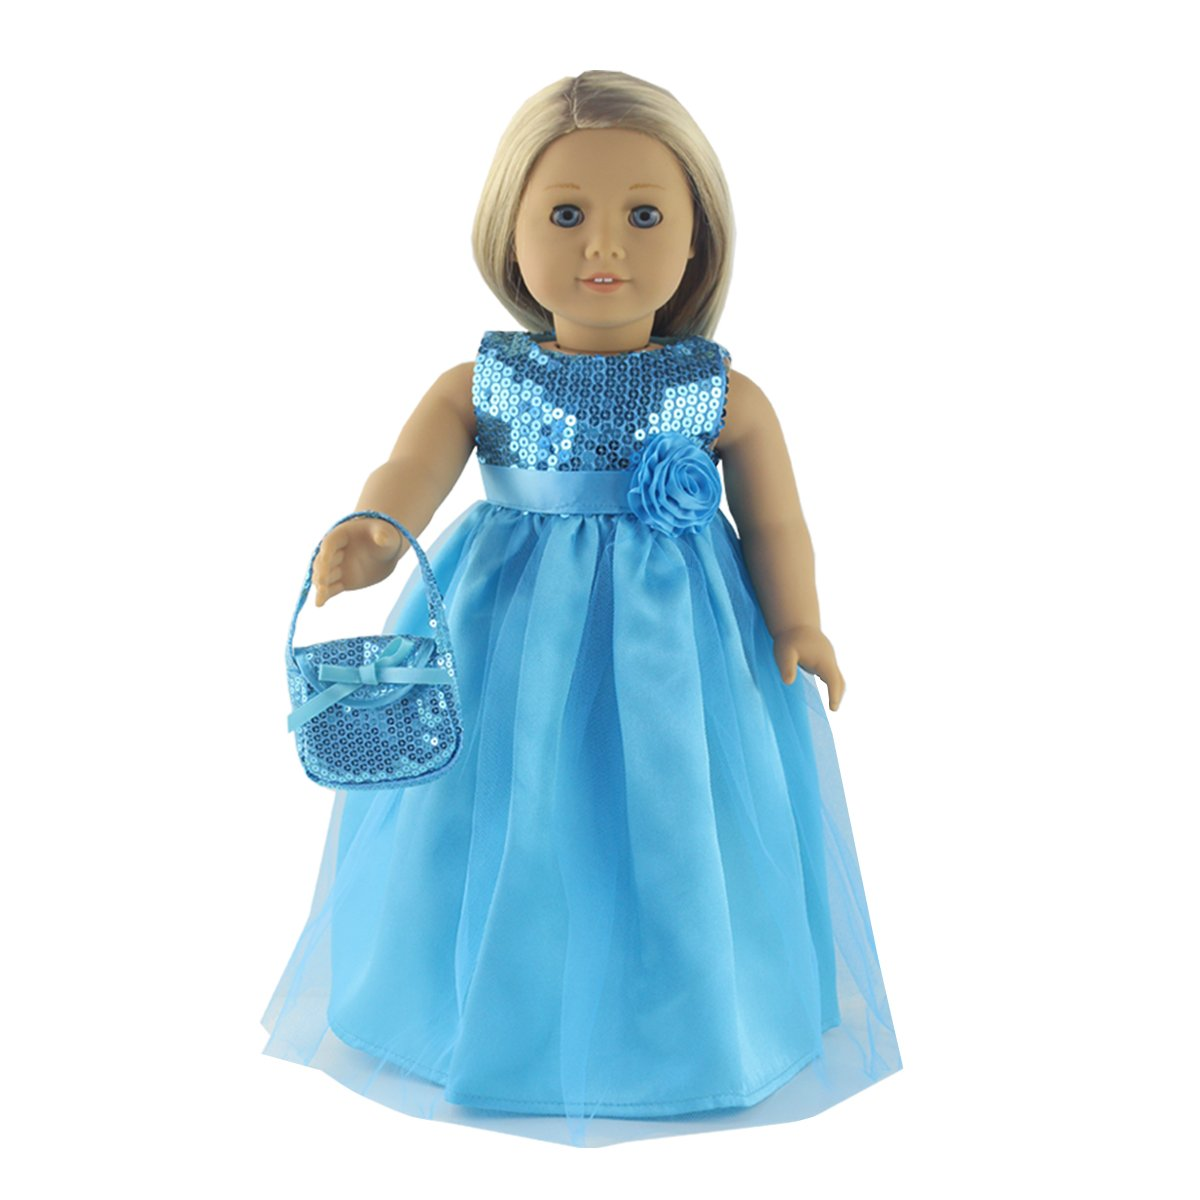 18 Inch Doll Clothes 2 Piece Teal Long Dress,Includes Teal Dress,Teal Handbag Fit 18 inch American Girl Dolls Fundolls